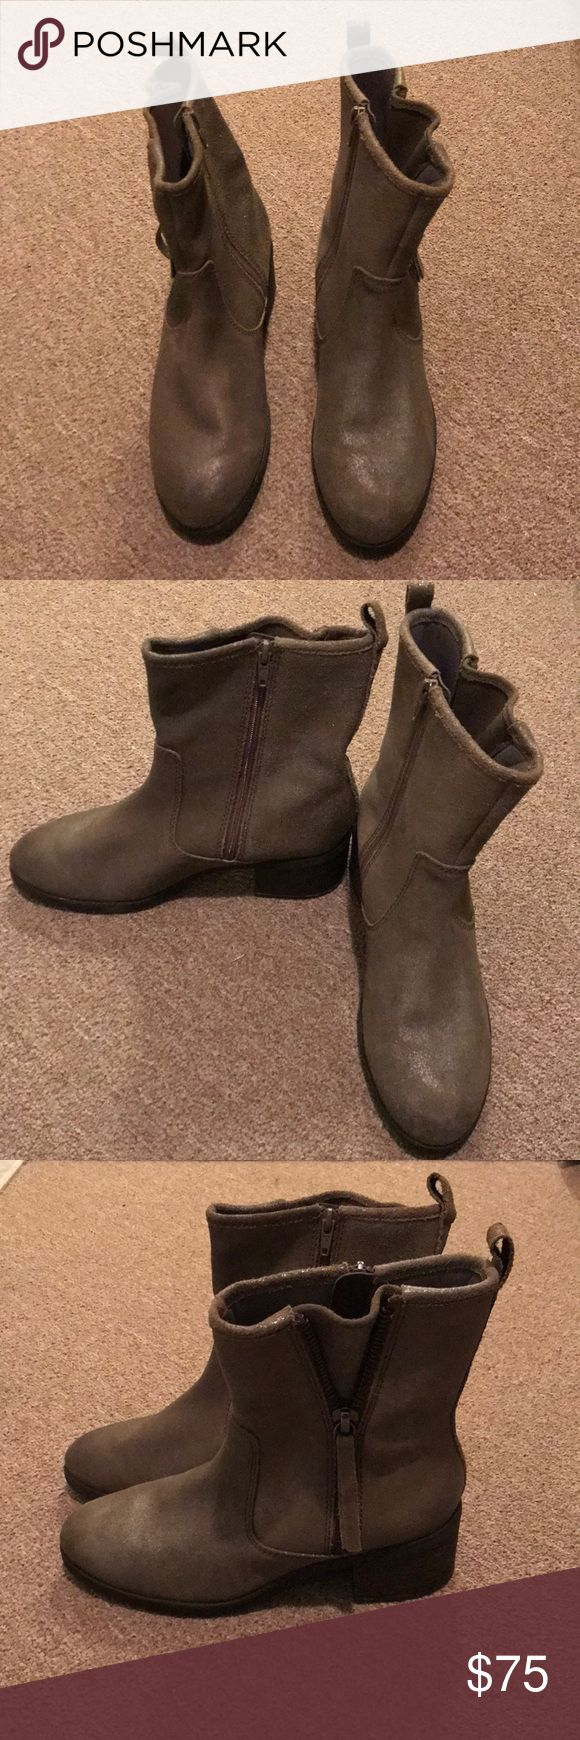 Grey Clarks boots Grey Clarks boots. Only worn once. Soft cushion sole. Exterior has slight sheen to it. Clarks Shoes